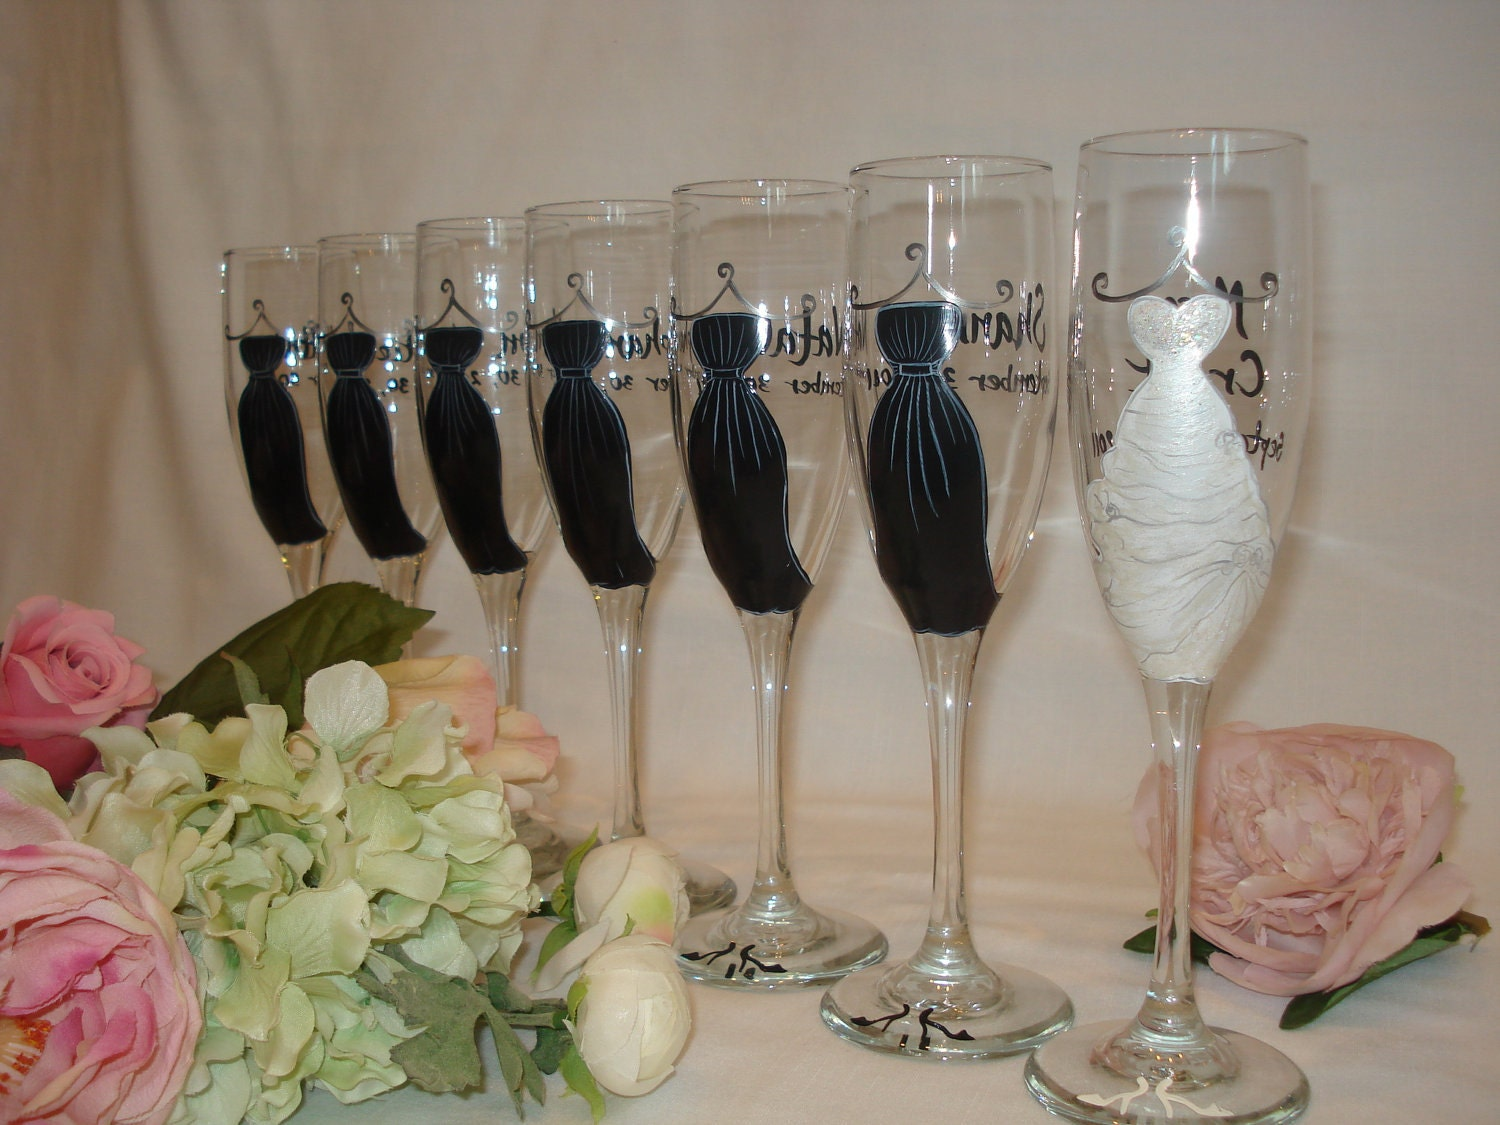 Wedding Gifts From Bridesmaids: Personalized Hand Painted Bridesmaid Dress Wine Glasses GIFT